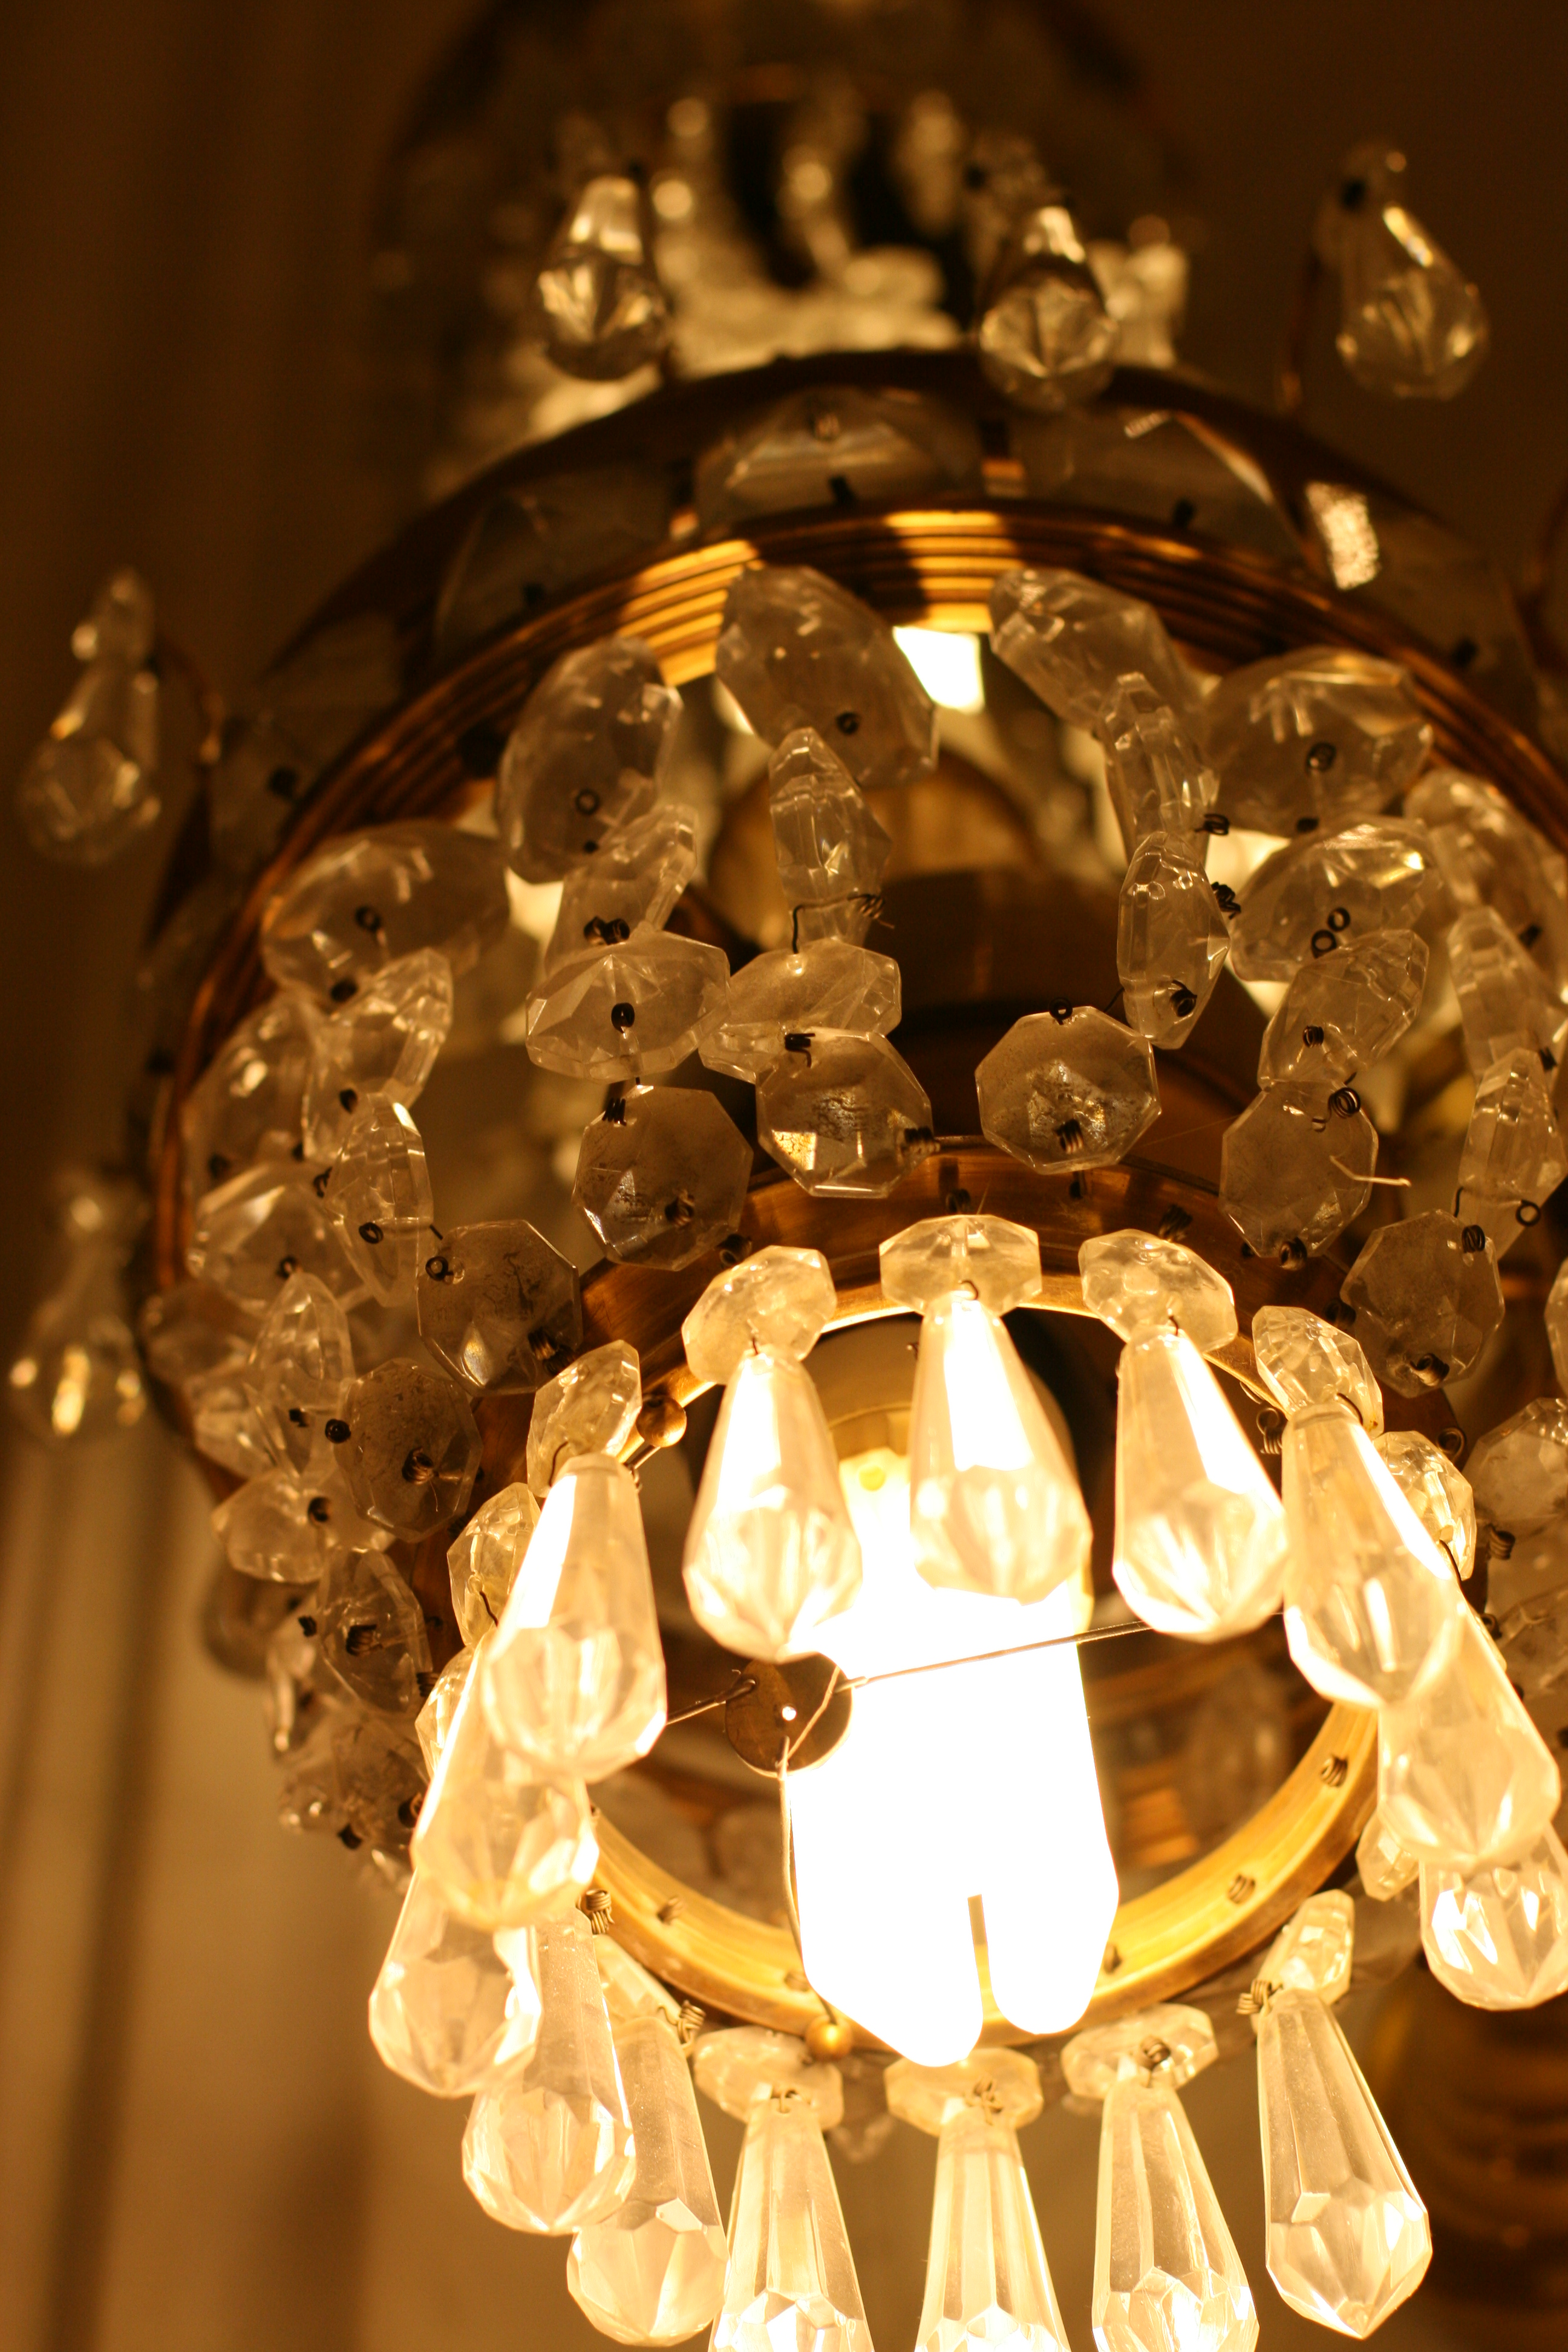 The History of Crystal Chandeliers